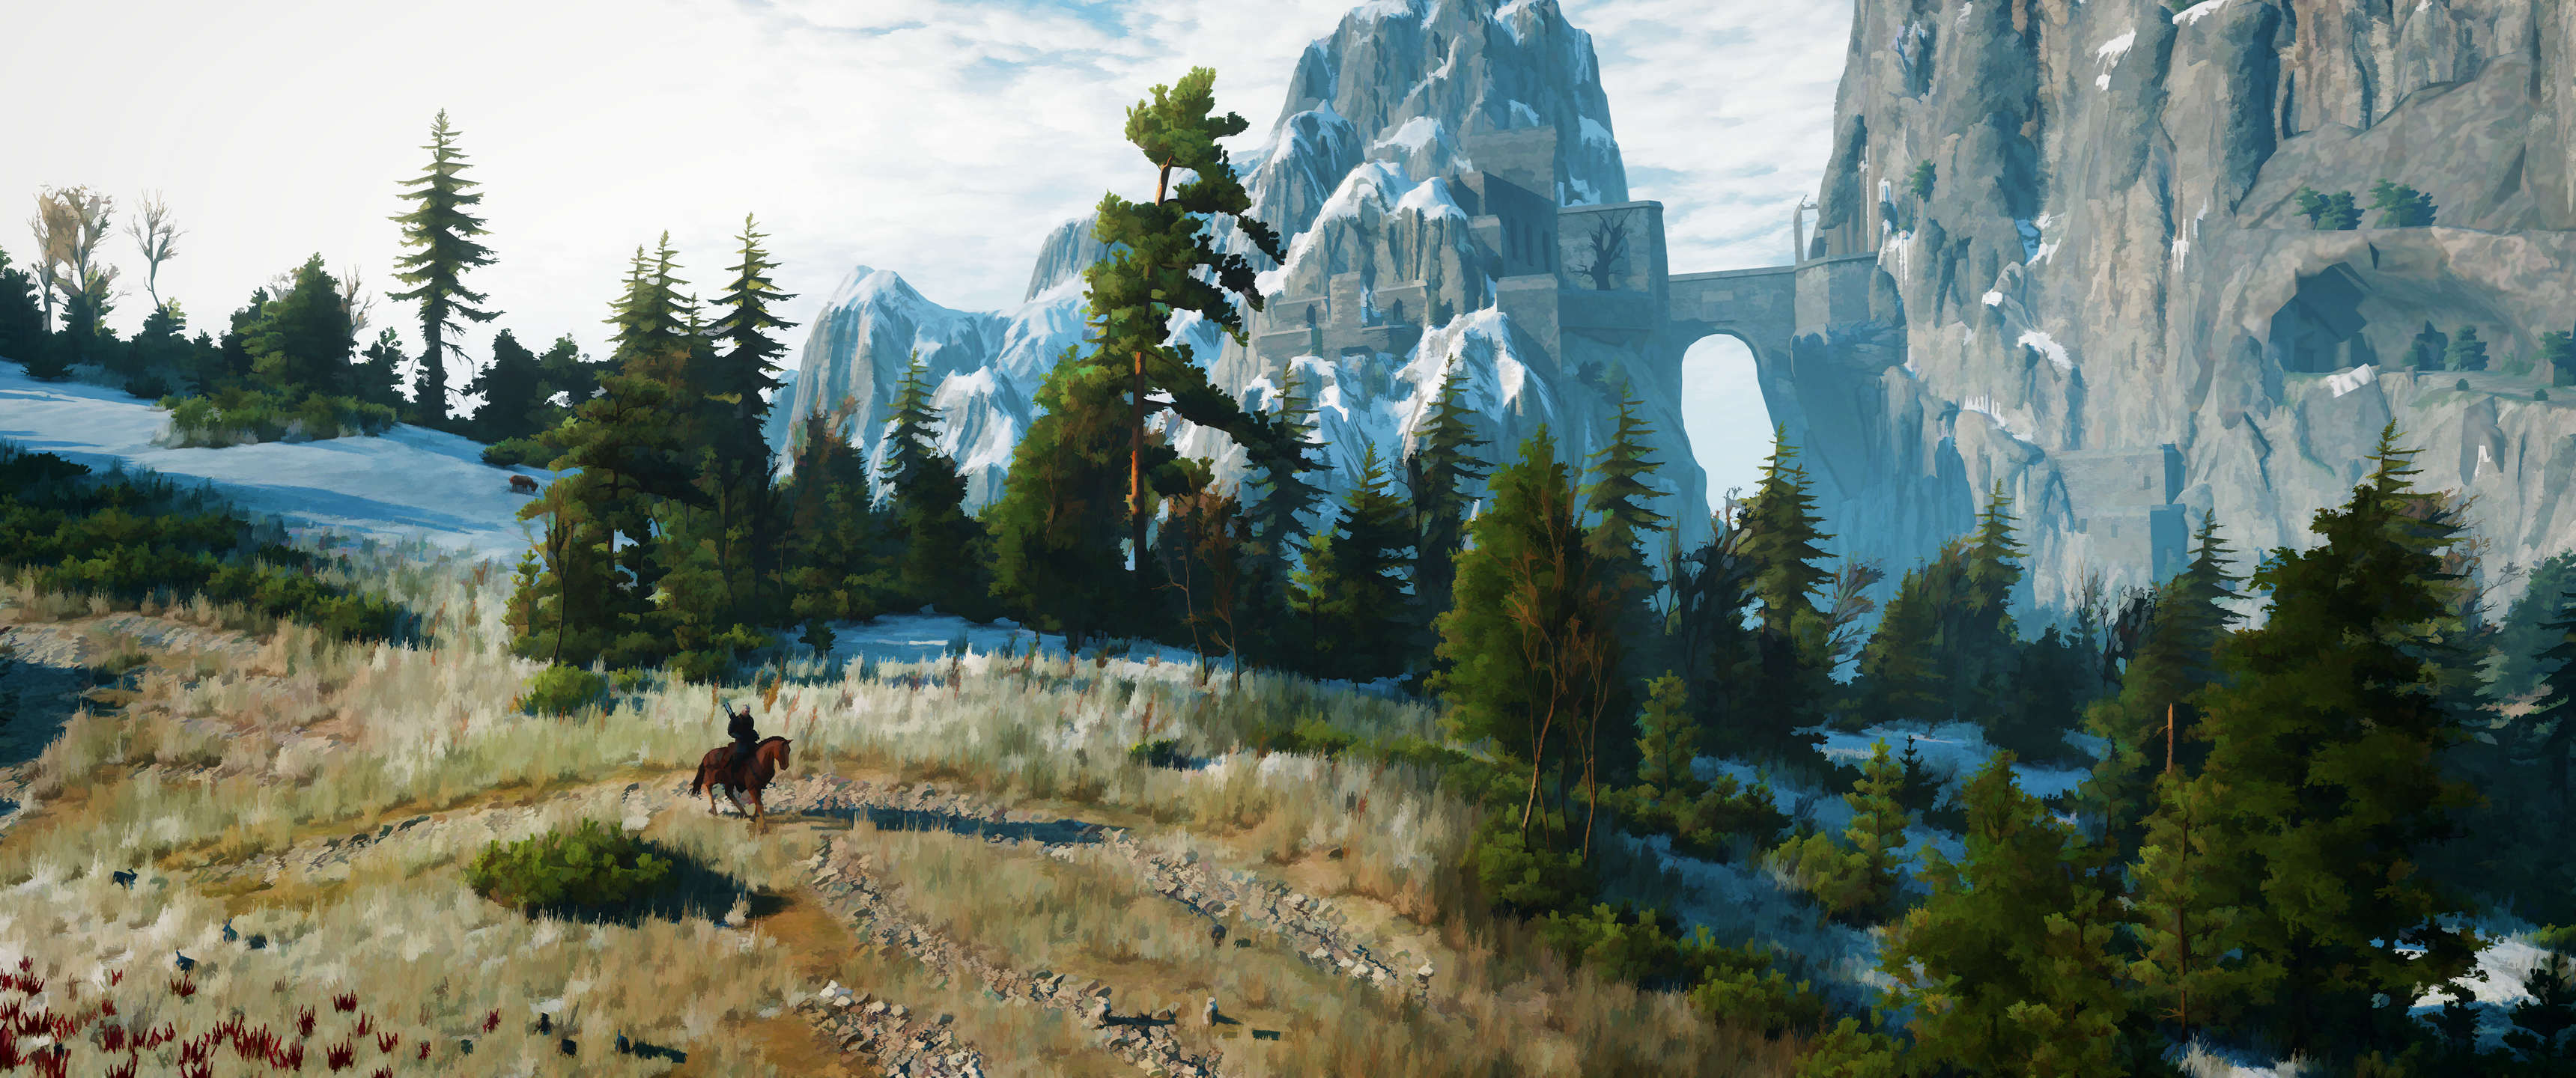 tS0W9EX This Guy Turned His Witcher 3 Screenshots Into Works Of Art